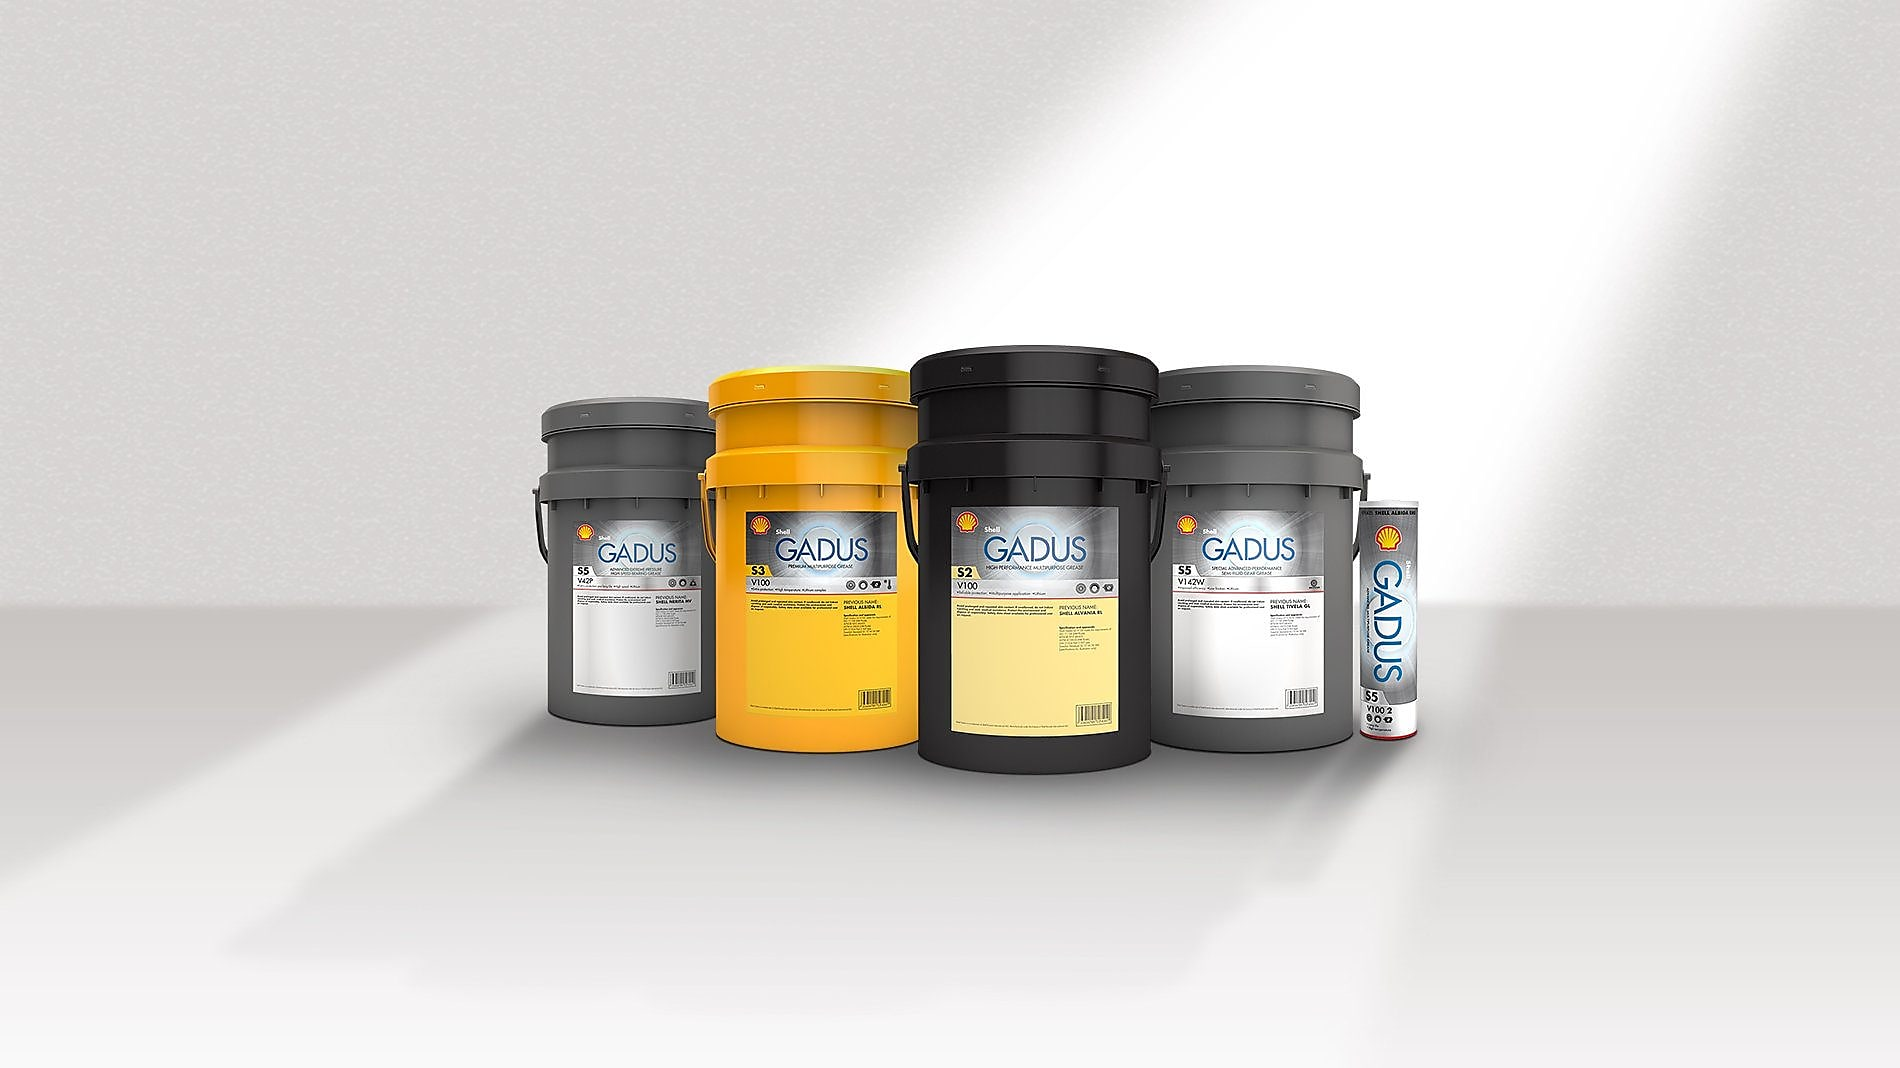 Shell Gadus - Greases | Shell Canada